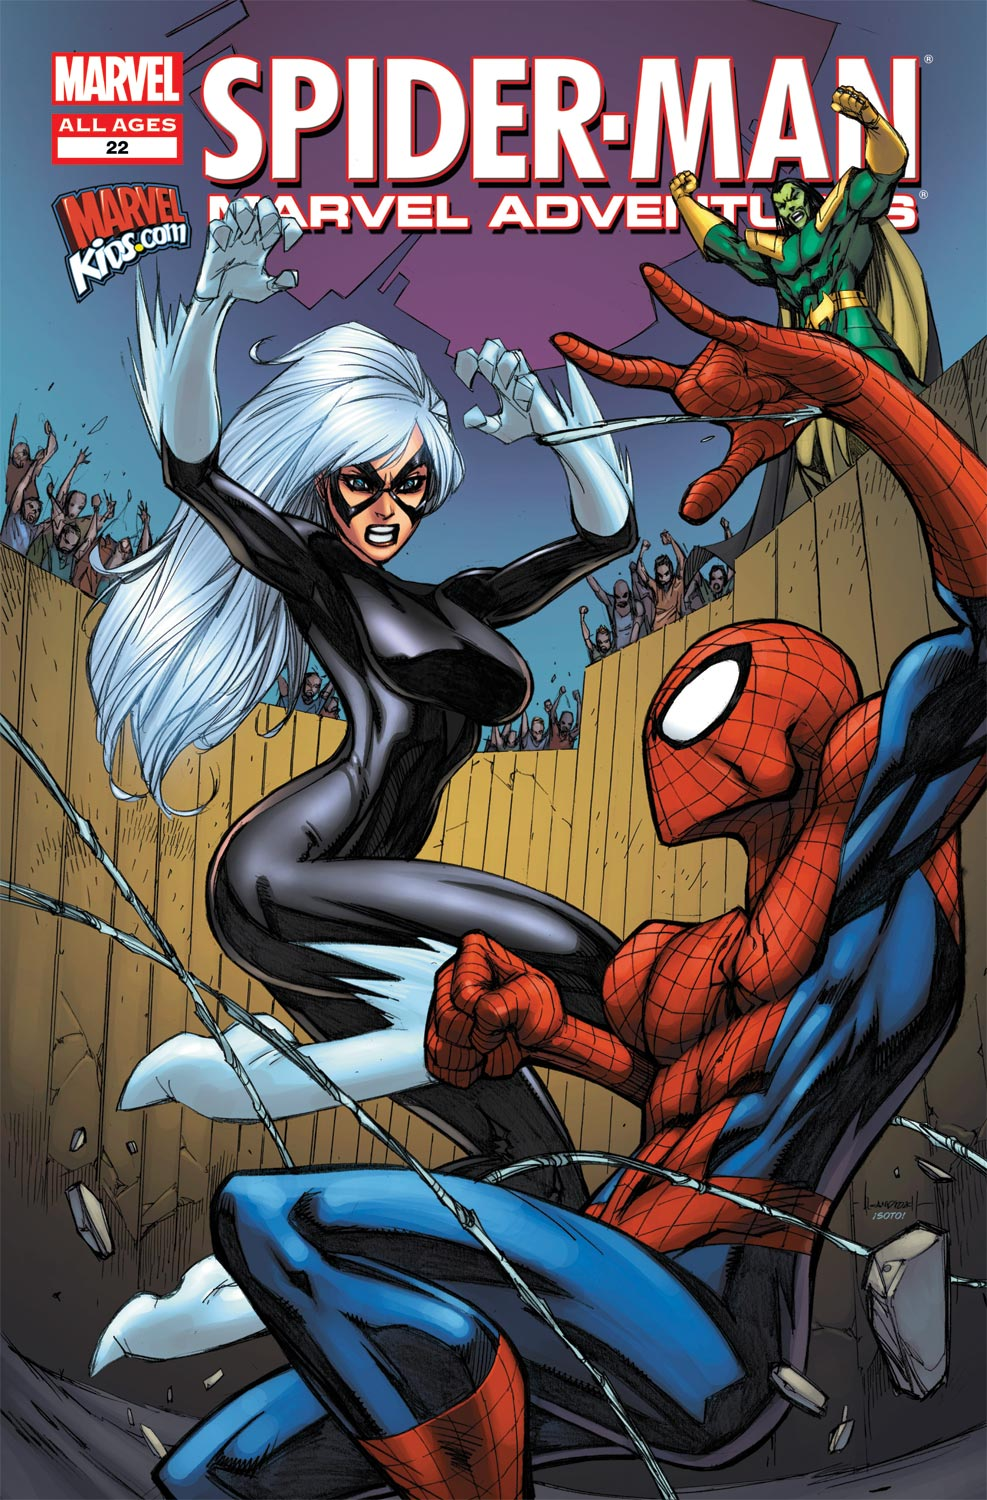 Spider-Man Marvel Adventures (2010) #22